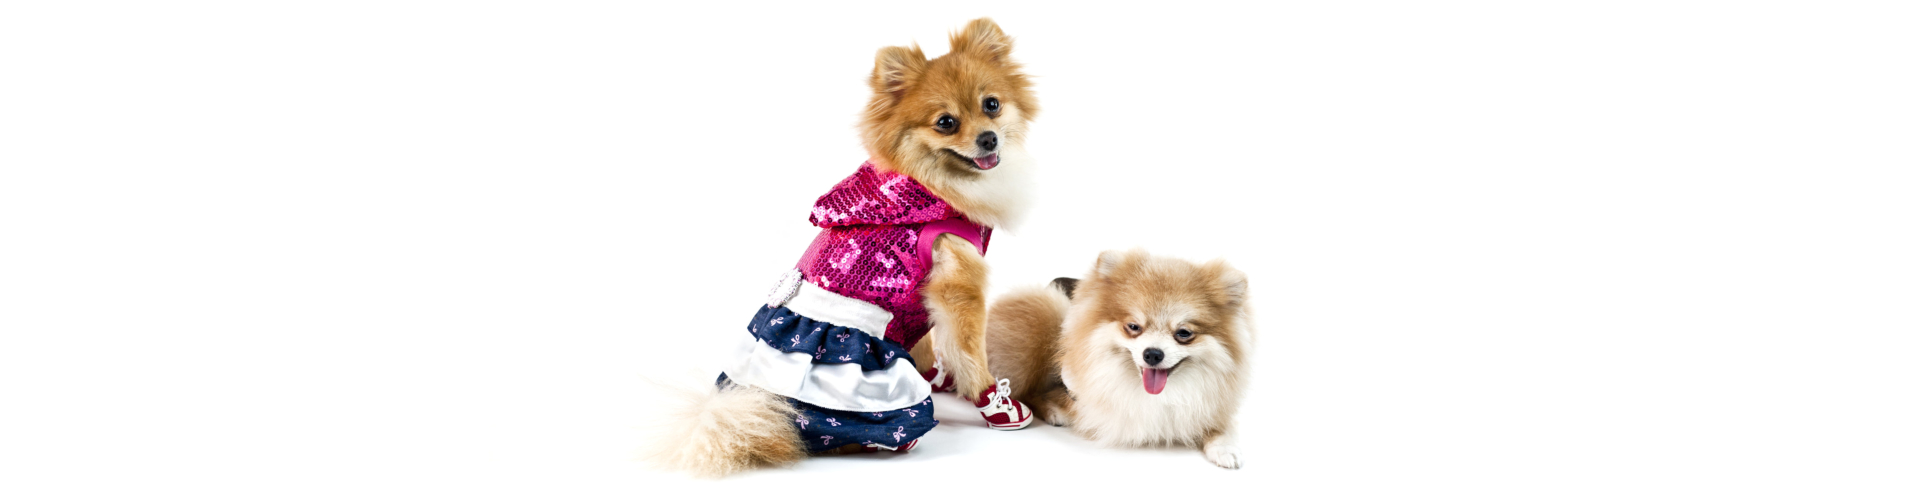 The two cute Pomeranian dog over white one dressed up